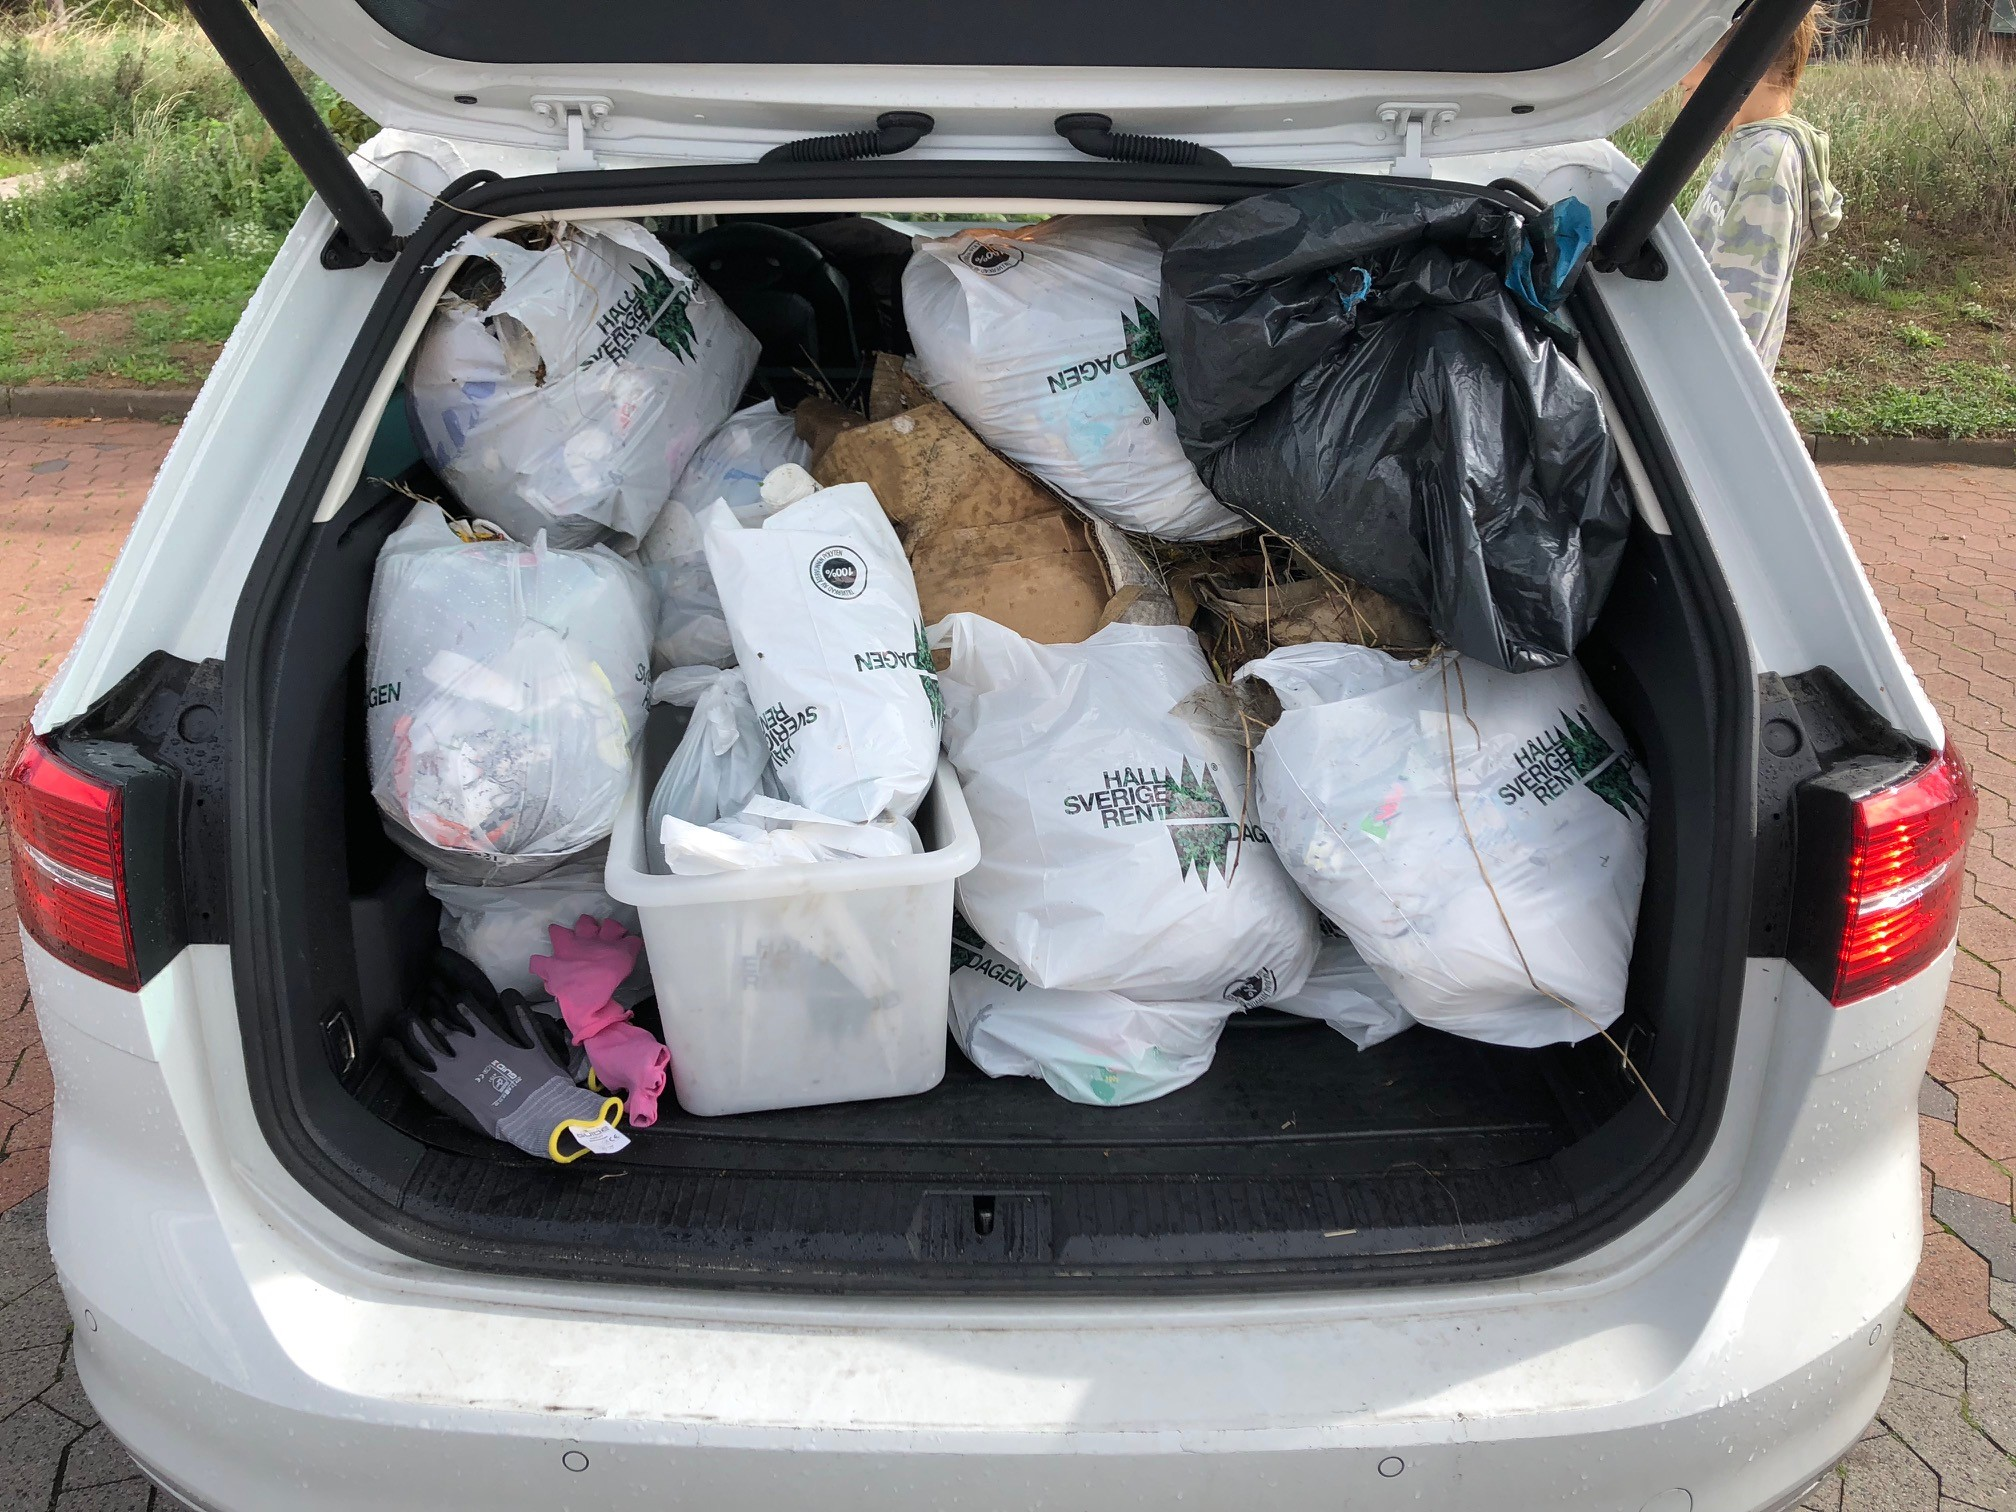 World Cleanup Day - car with bags